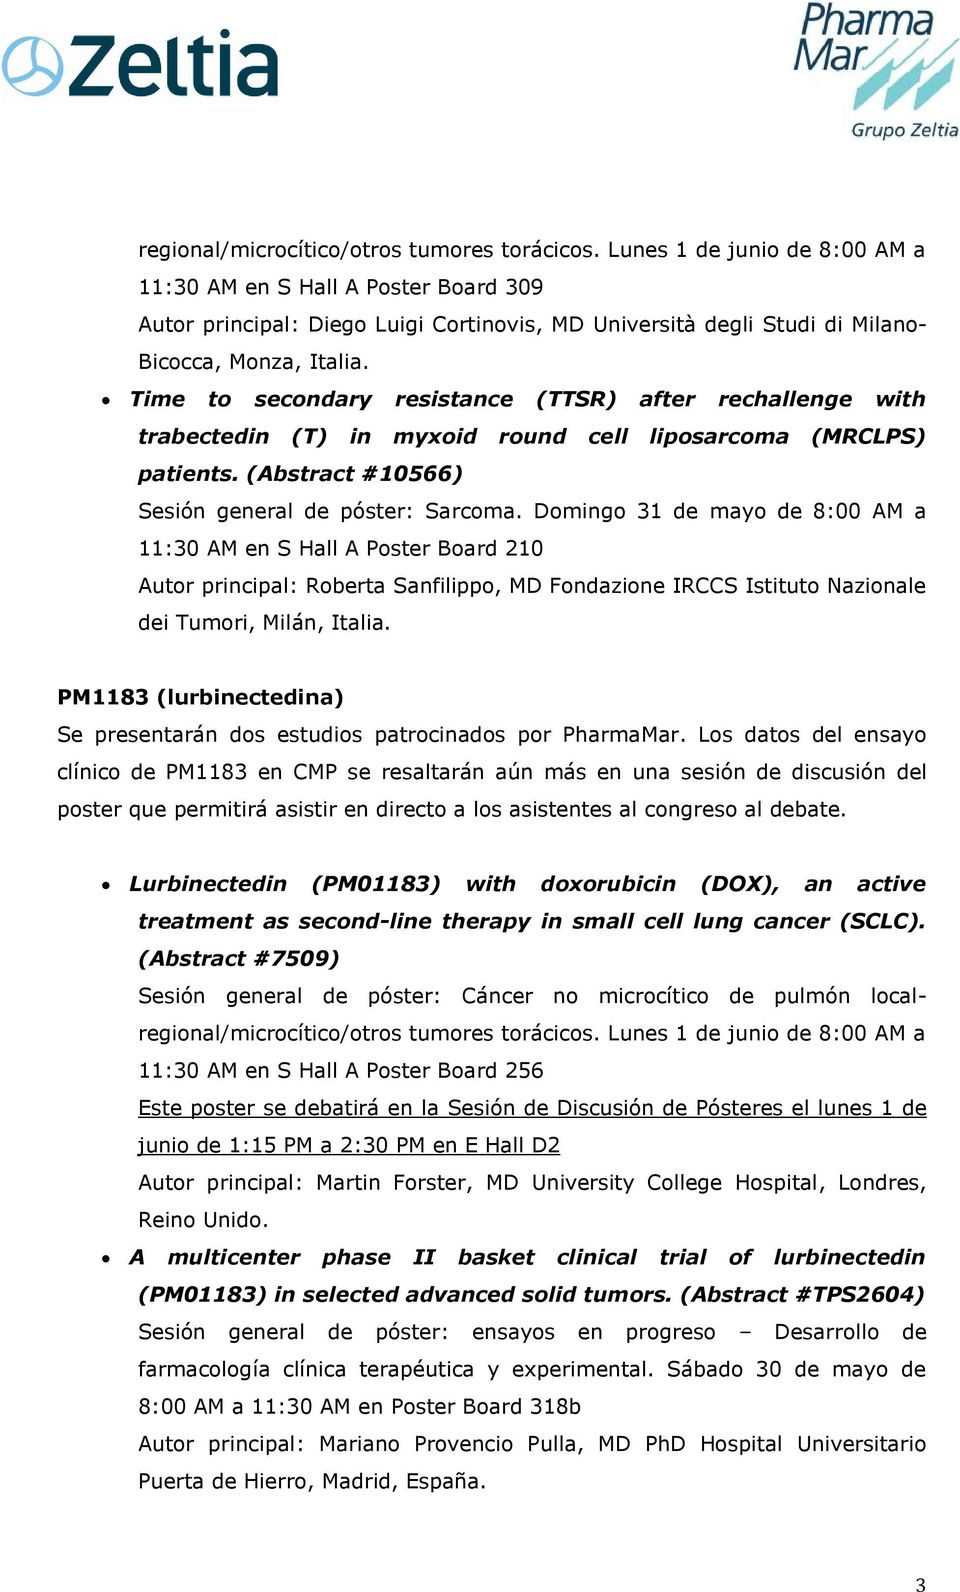 Time to secondary resistance (TTSR) after rechallenge with trabectedin (T) in myxoid round cell liposarcoma (MRCLPS) patients. (Abstract #10566) Sesión general de póster: Sarcoma.